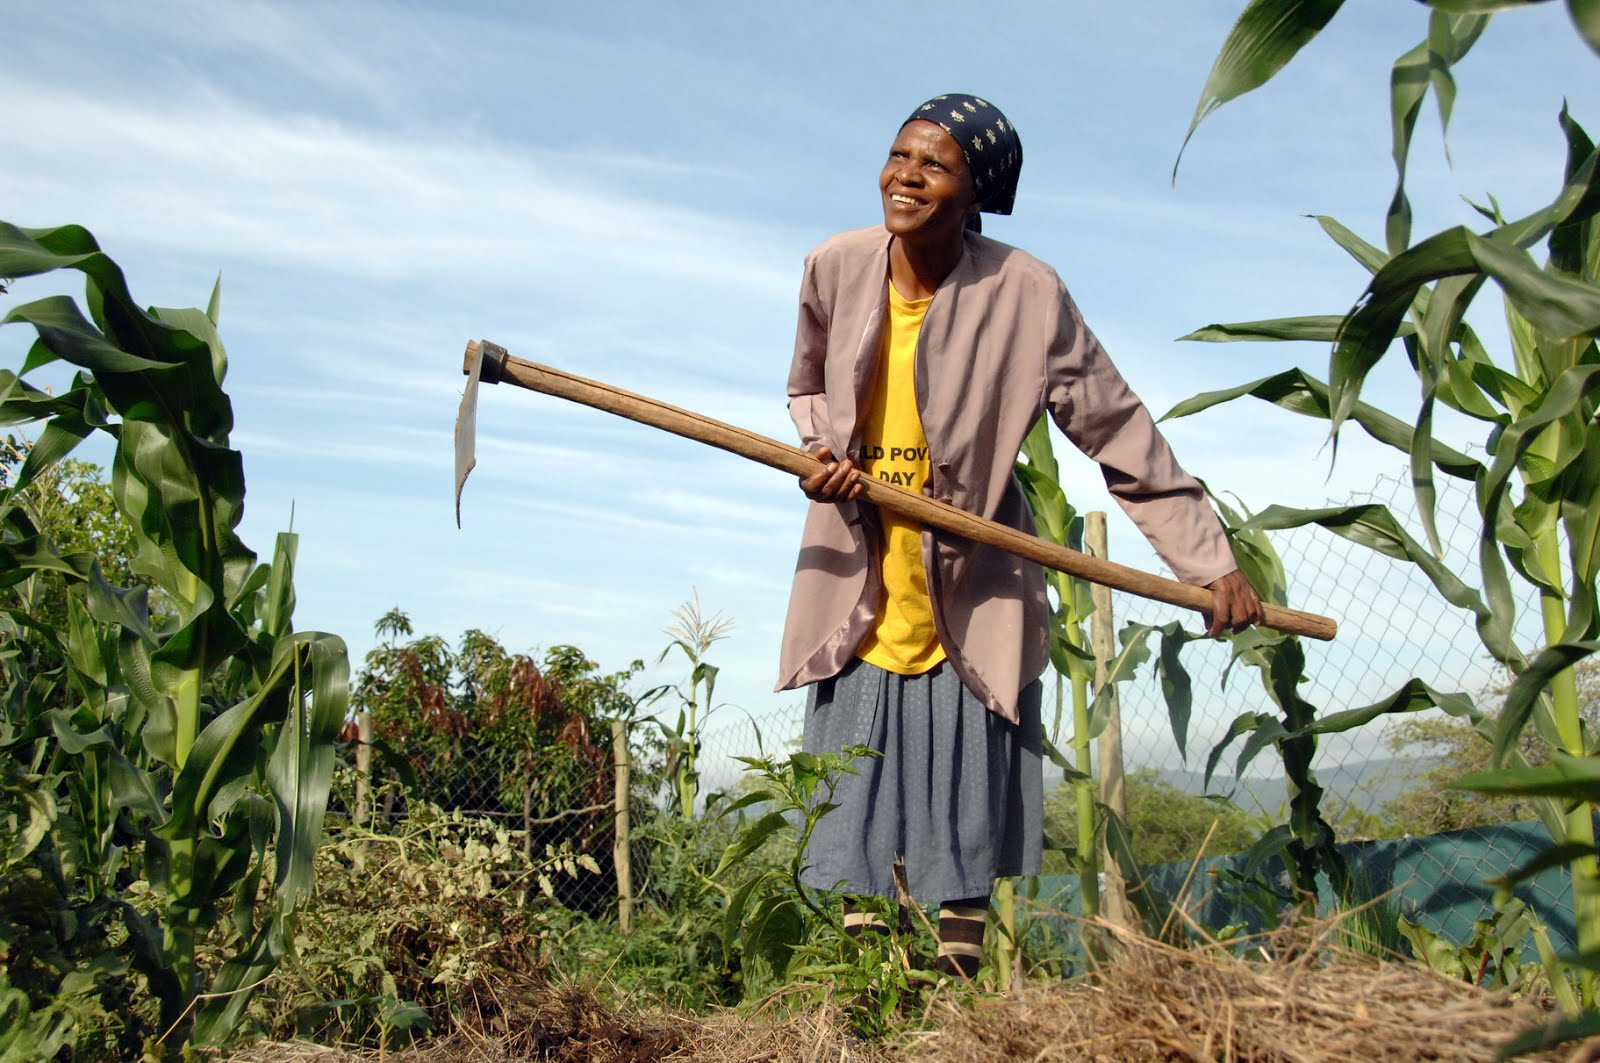 agriculture and rural development reconsidered debates over the future of smallholders remain central across the developing world writes steve wiggins